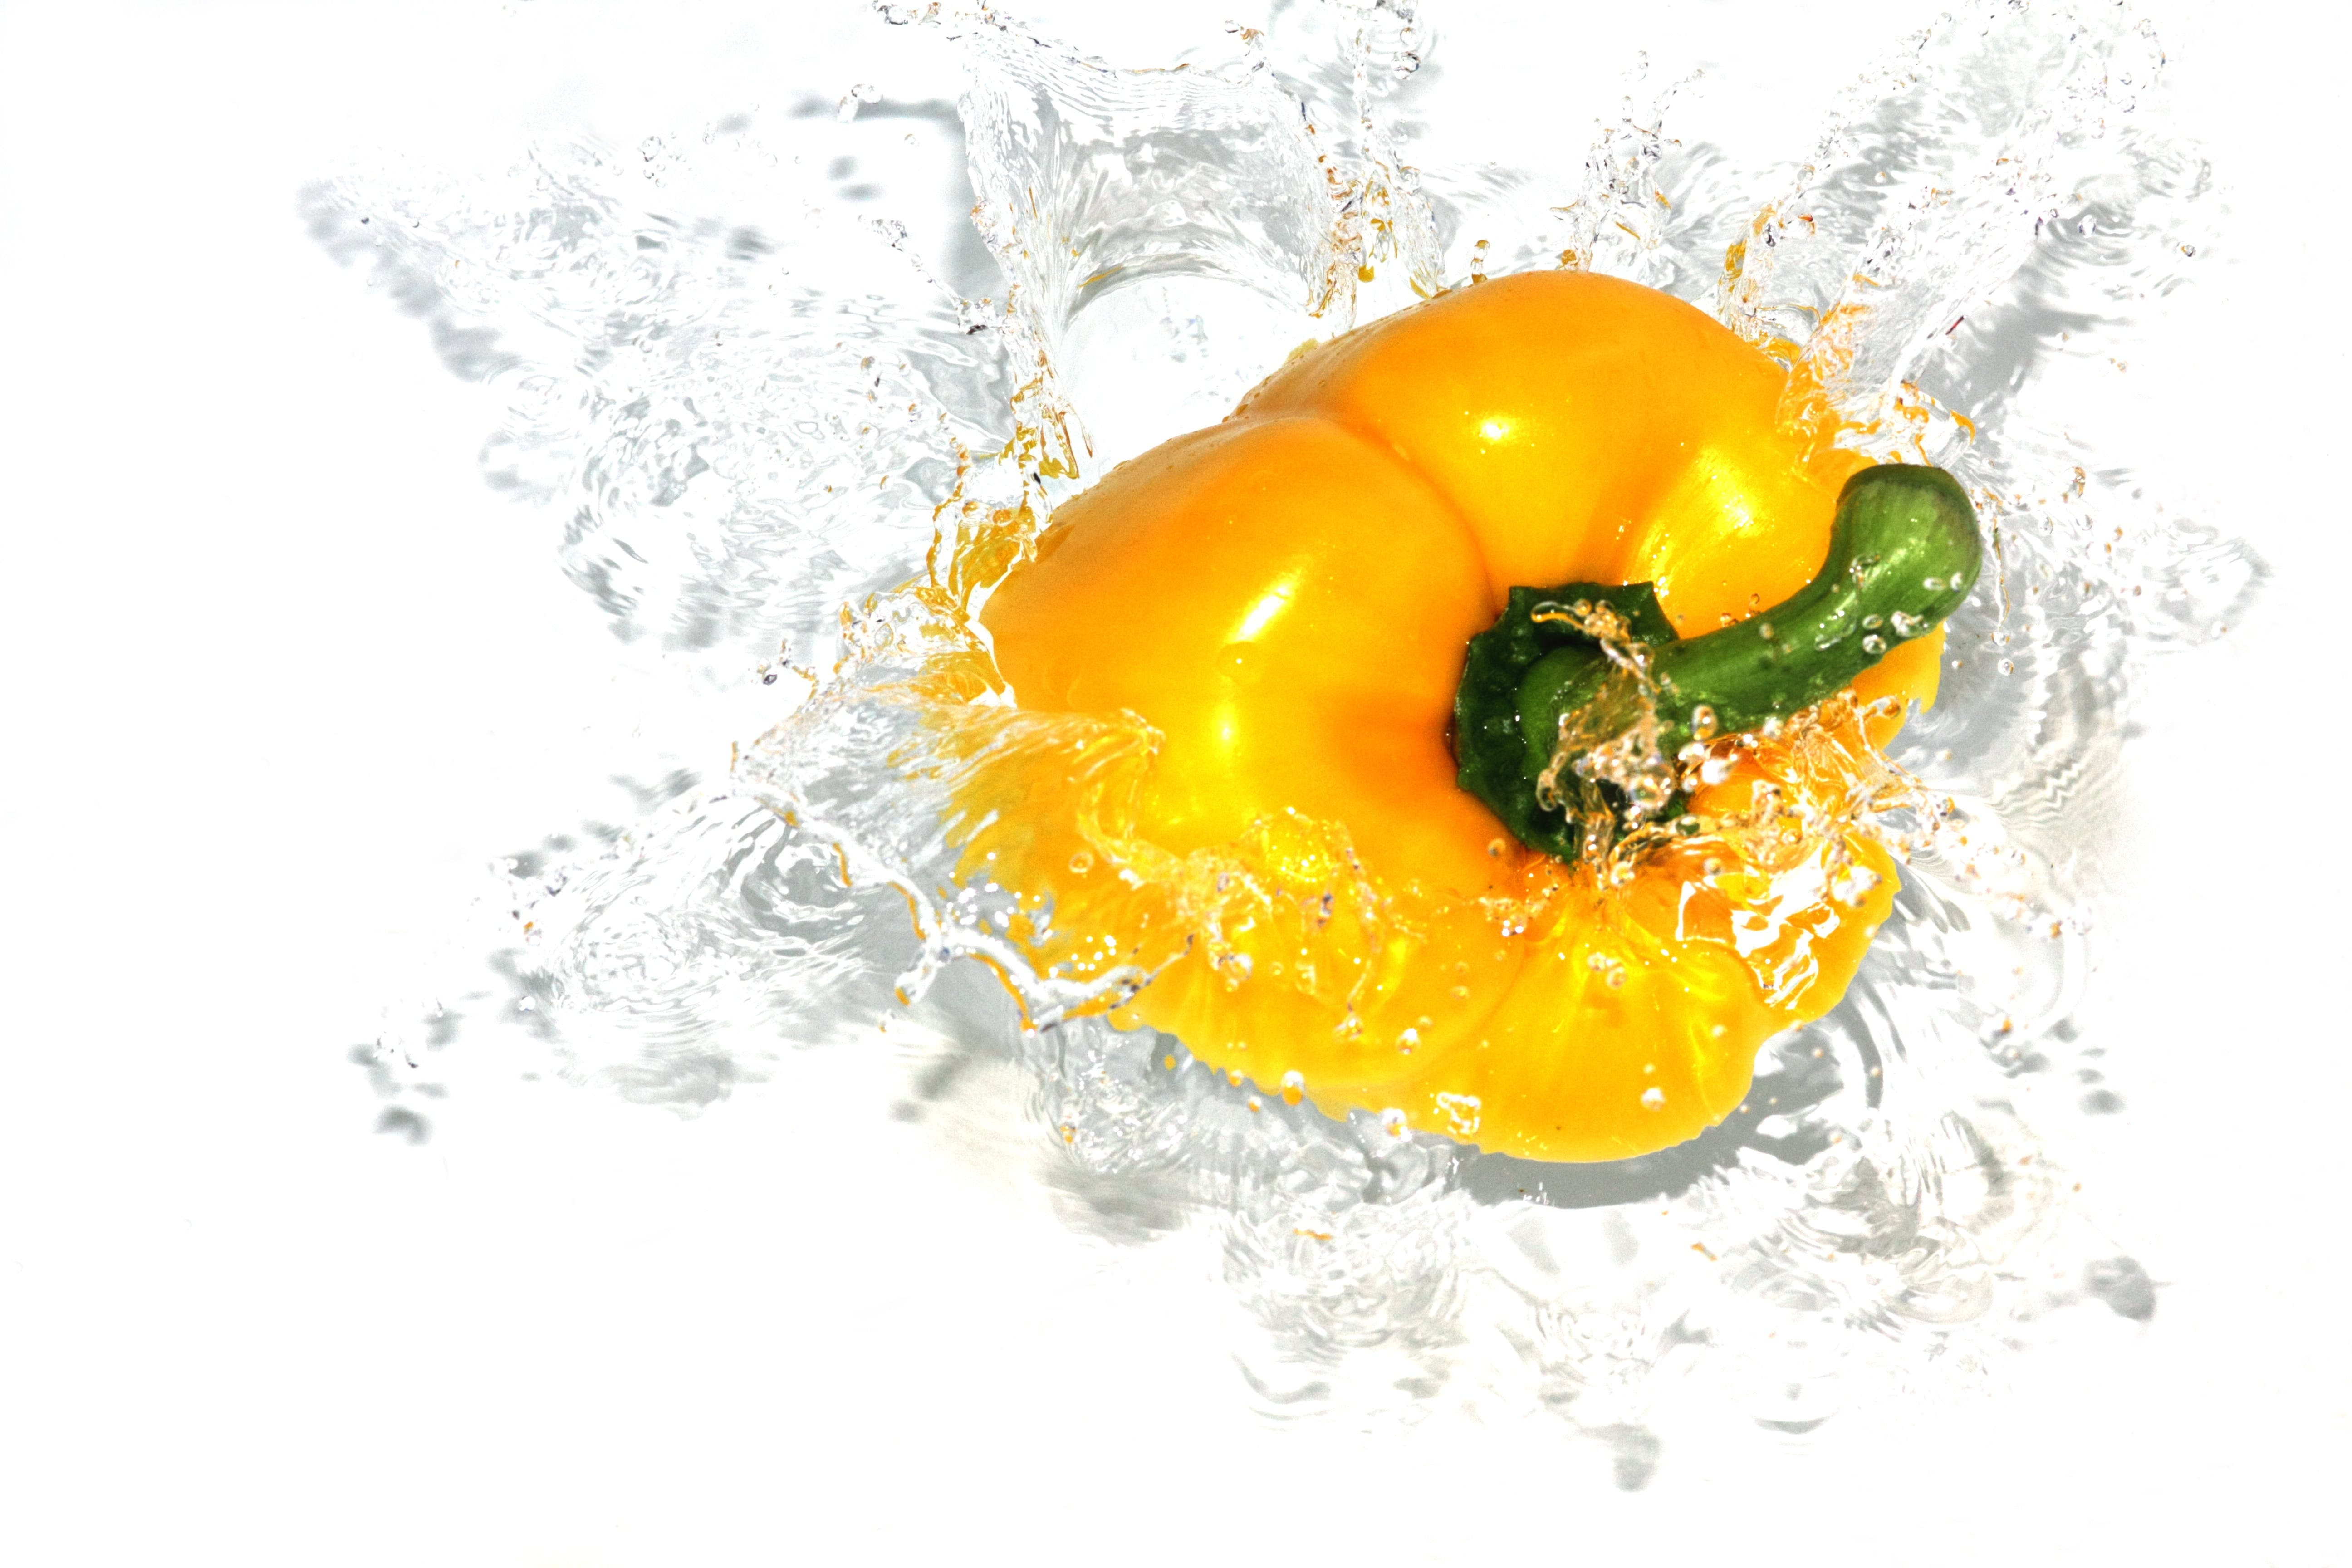 Yellow Bell Pepper Splash Into Water